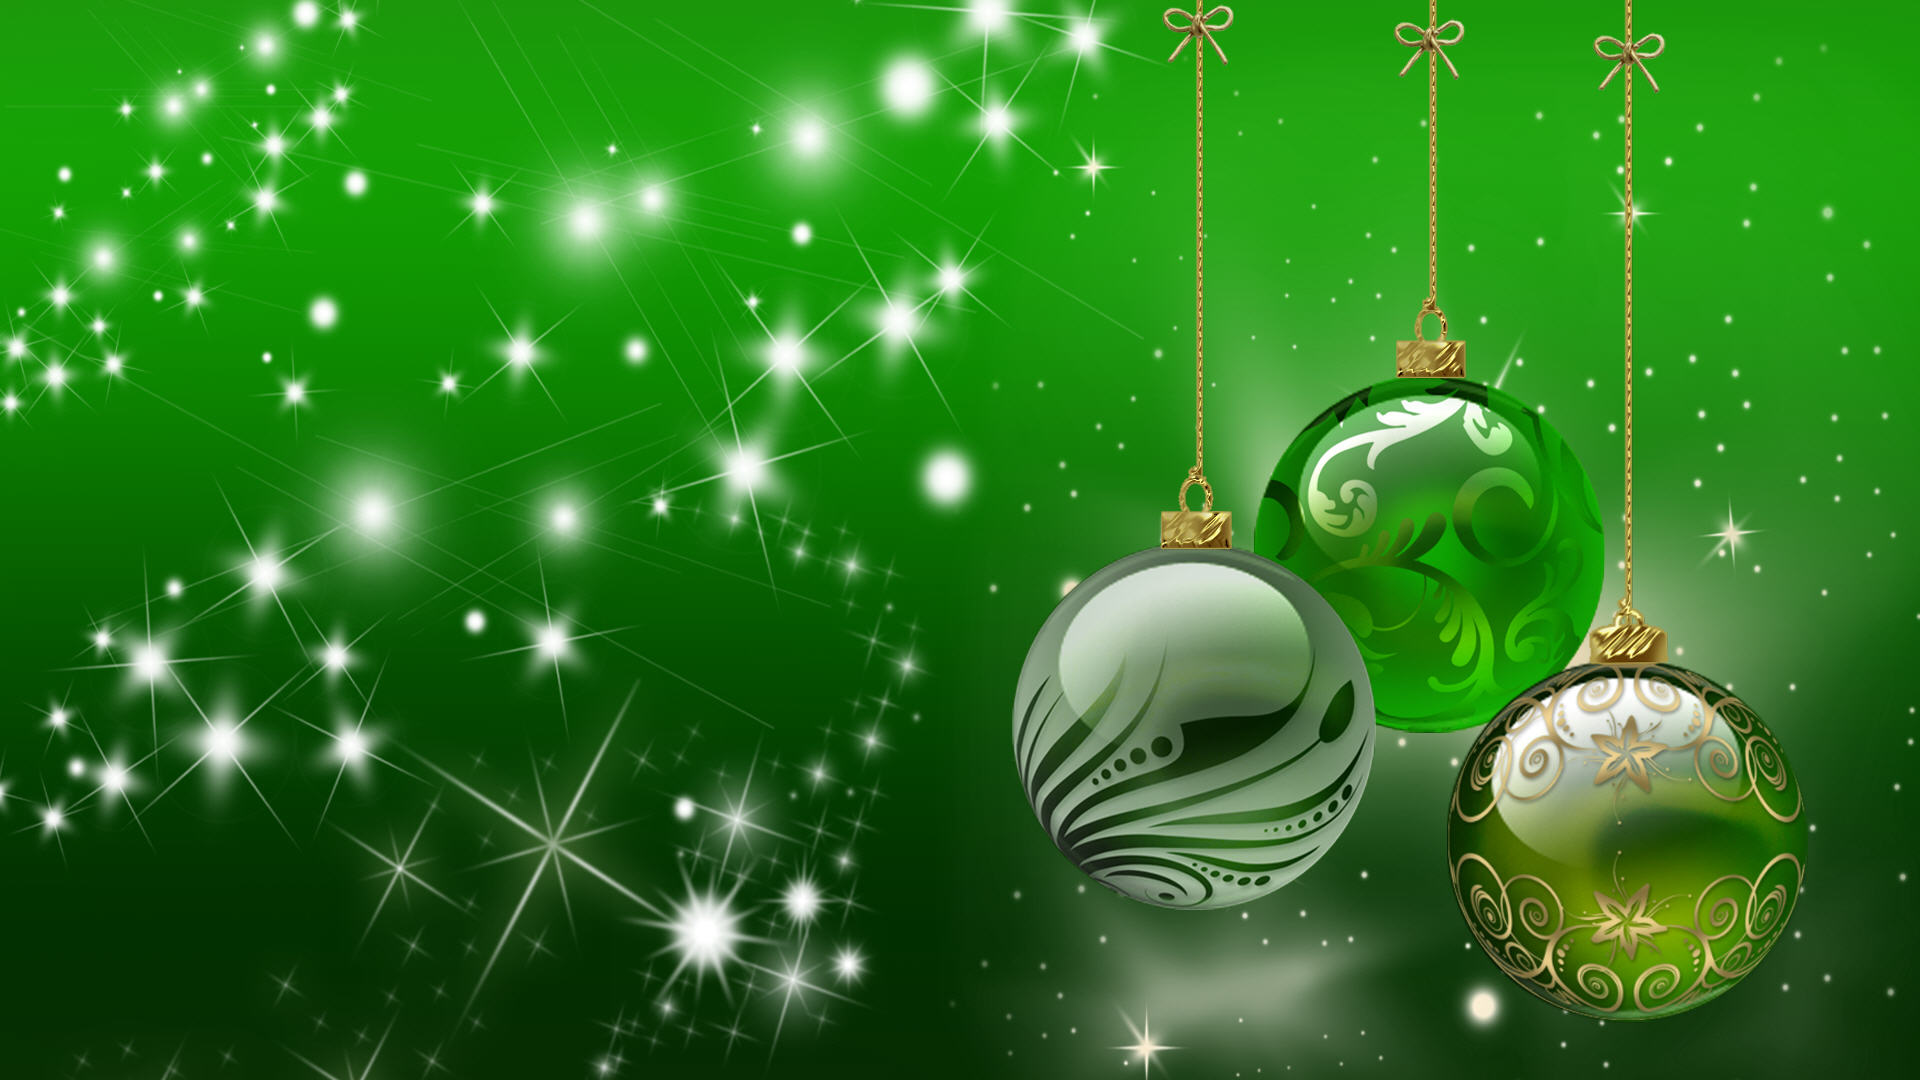 Holiday Image Download   Christmas Green Background Hd 1920x1080